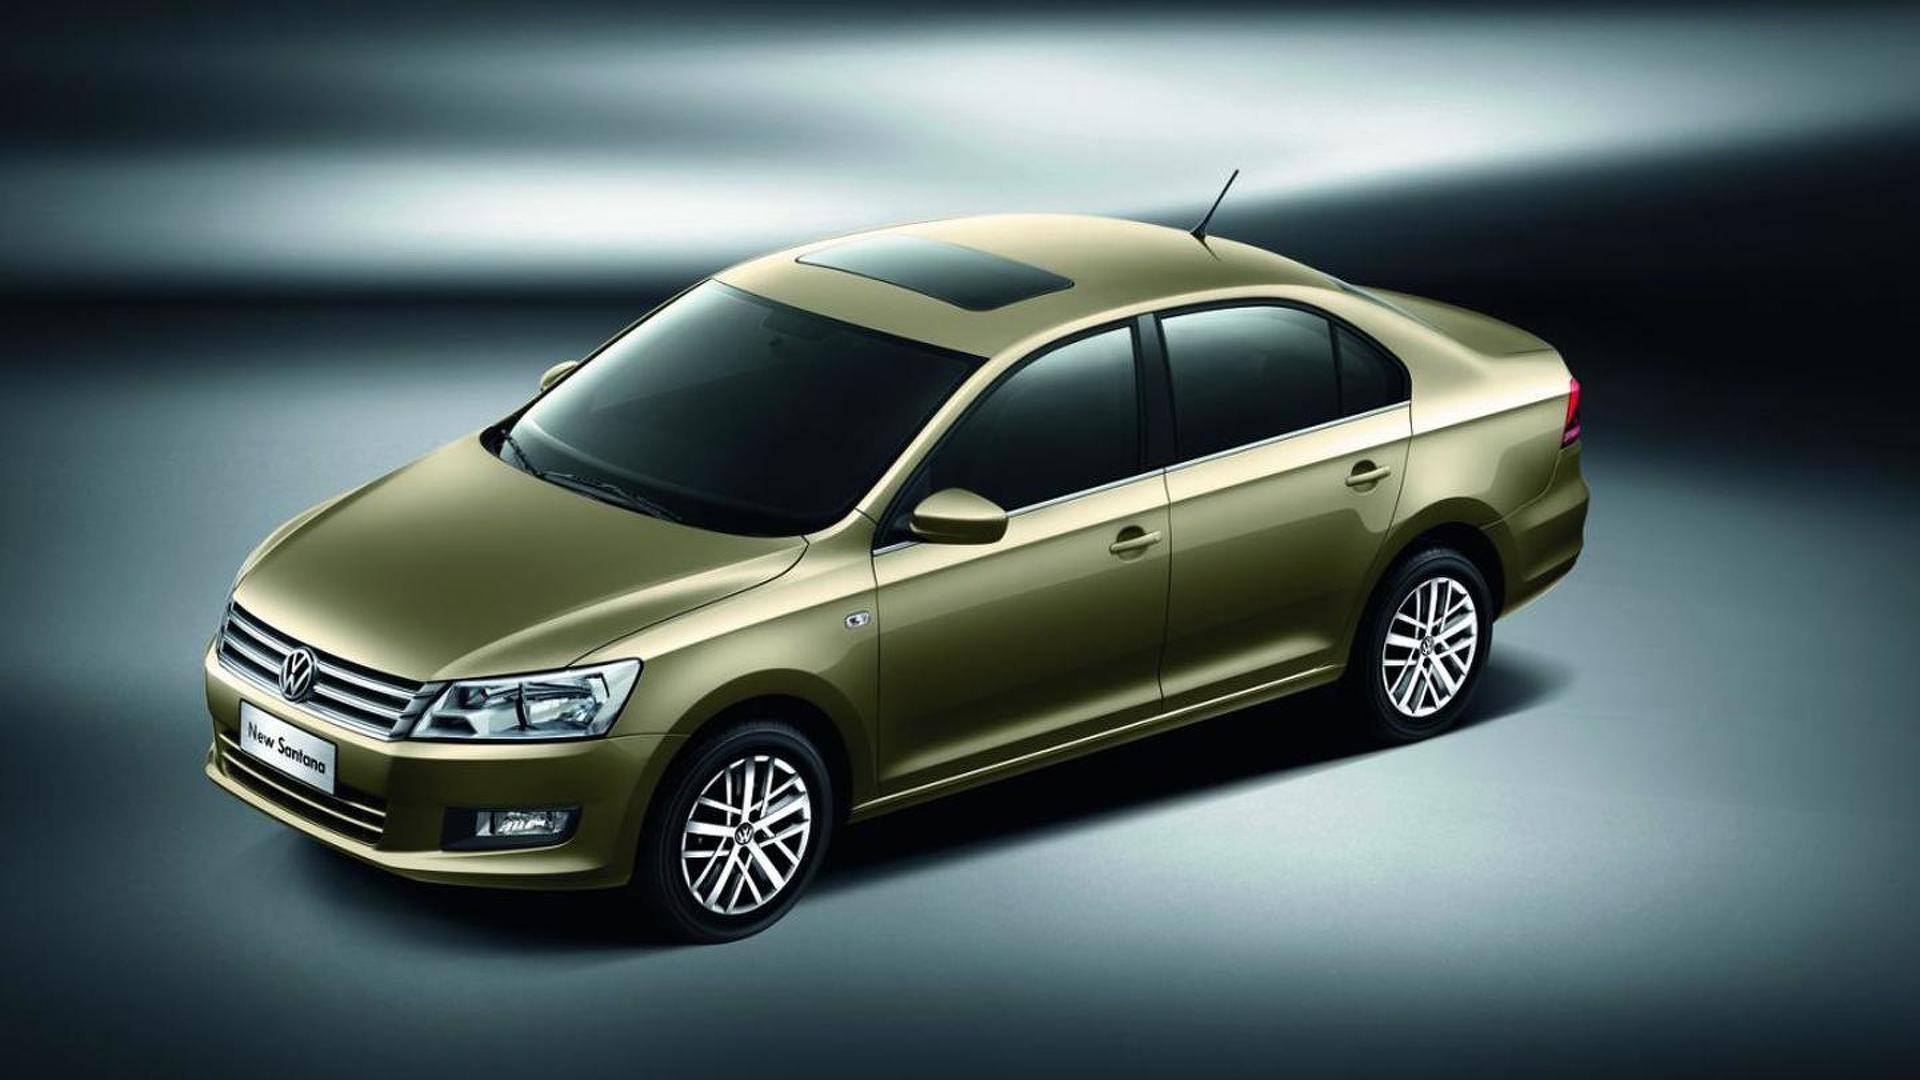 volkswagen low-cost brand set for 2017 launch in china with sub 7 000 eur price